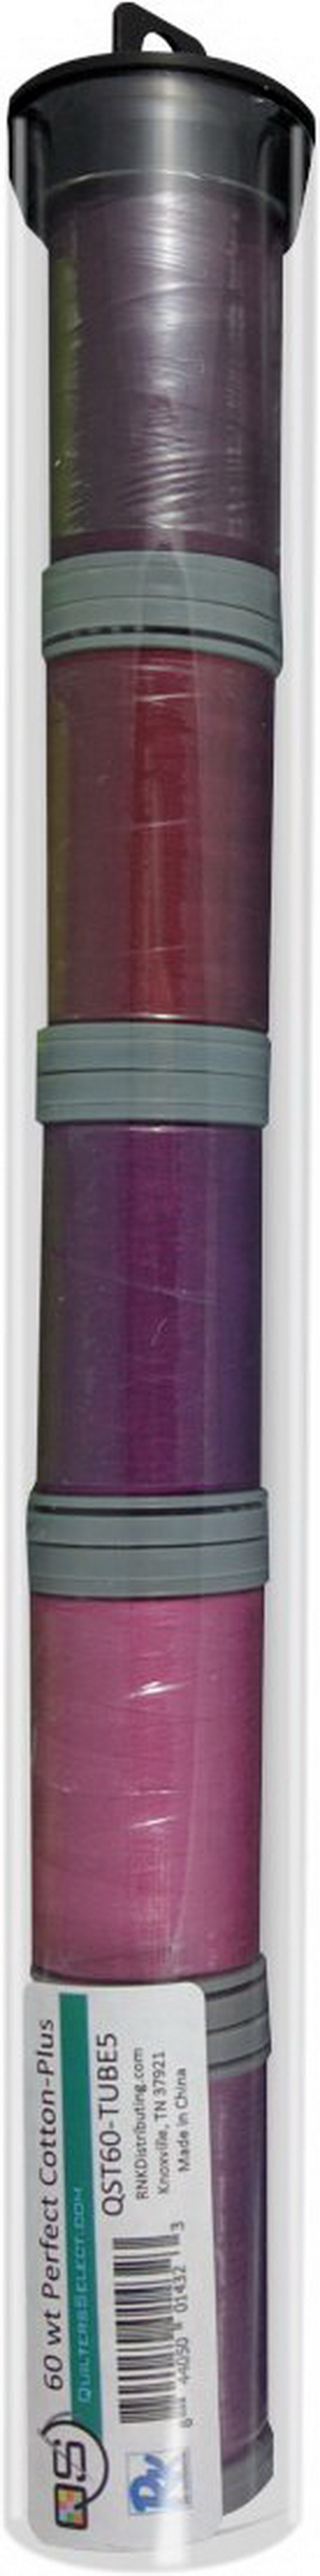 Quilters Select Perfect Cotton Plus Thread 60 Weight 400m Spools - Bundle Tube 5